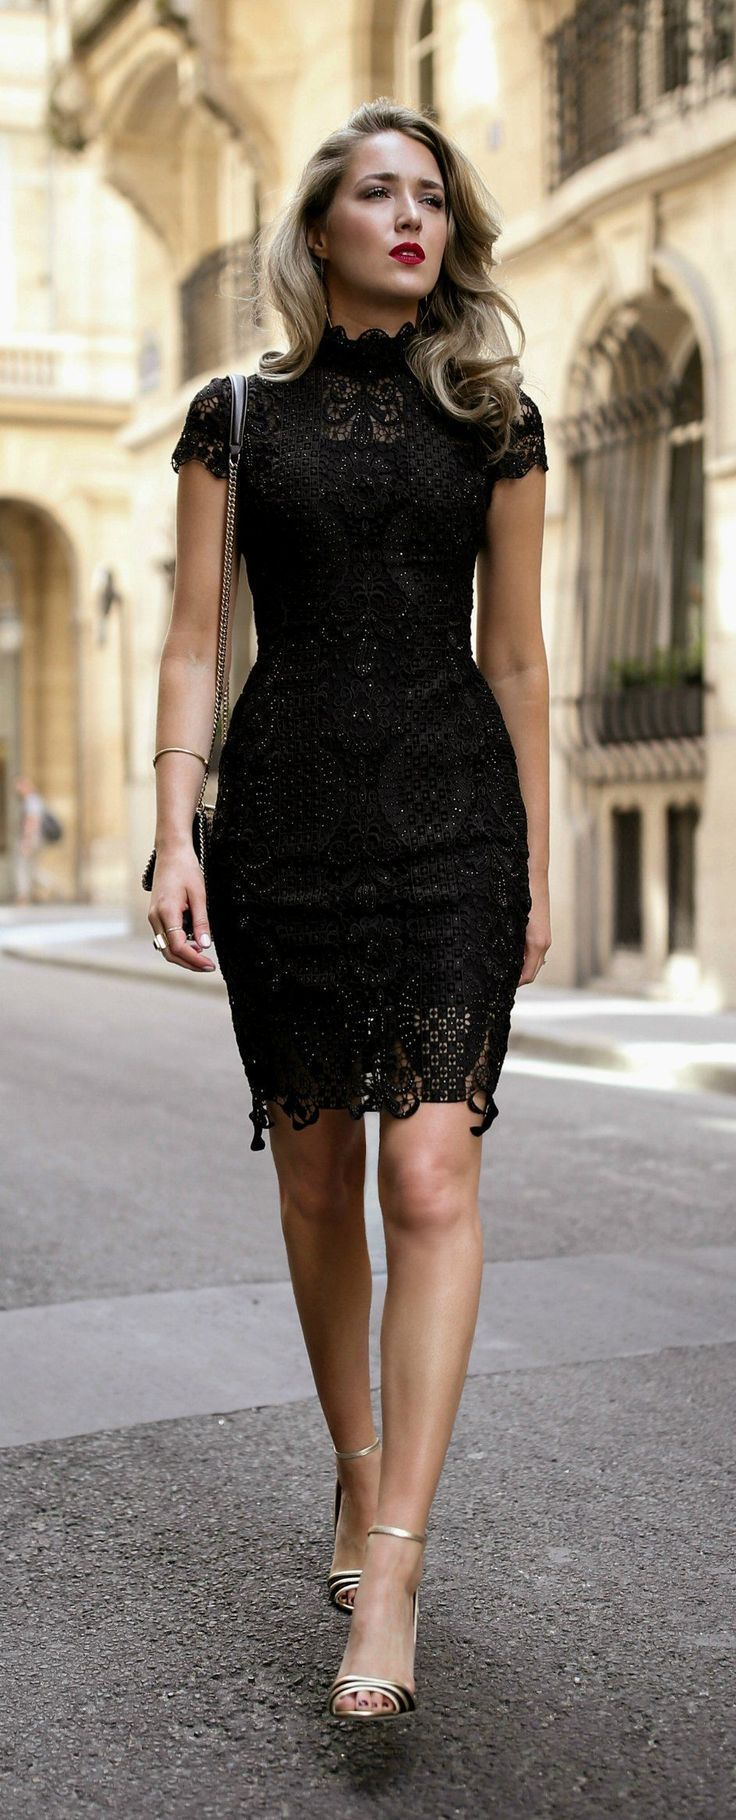 30 Dresses In 30 Days Day 11 What To Wear To A Cocktail Attire Wedding Black Lace Short Sl Lace Dress Outfit Lace Dress Black Short Cocktail Dress Classy [ 1820 x 736 Pixel ]